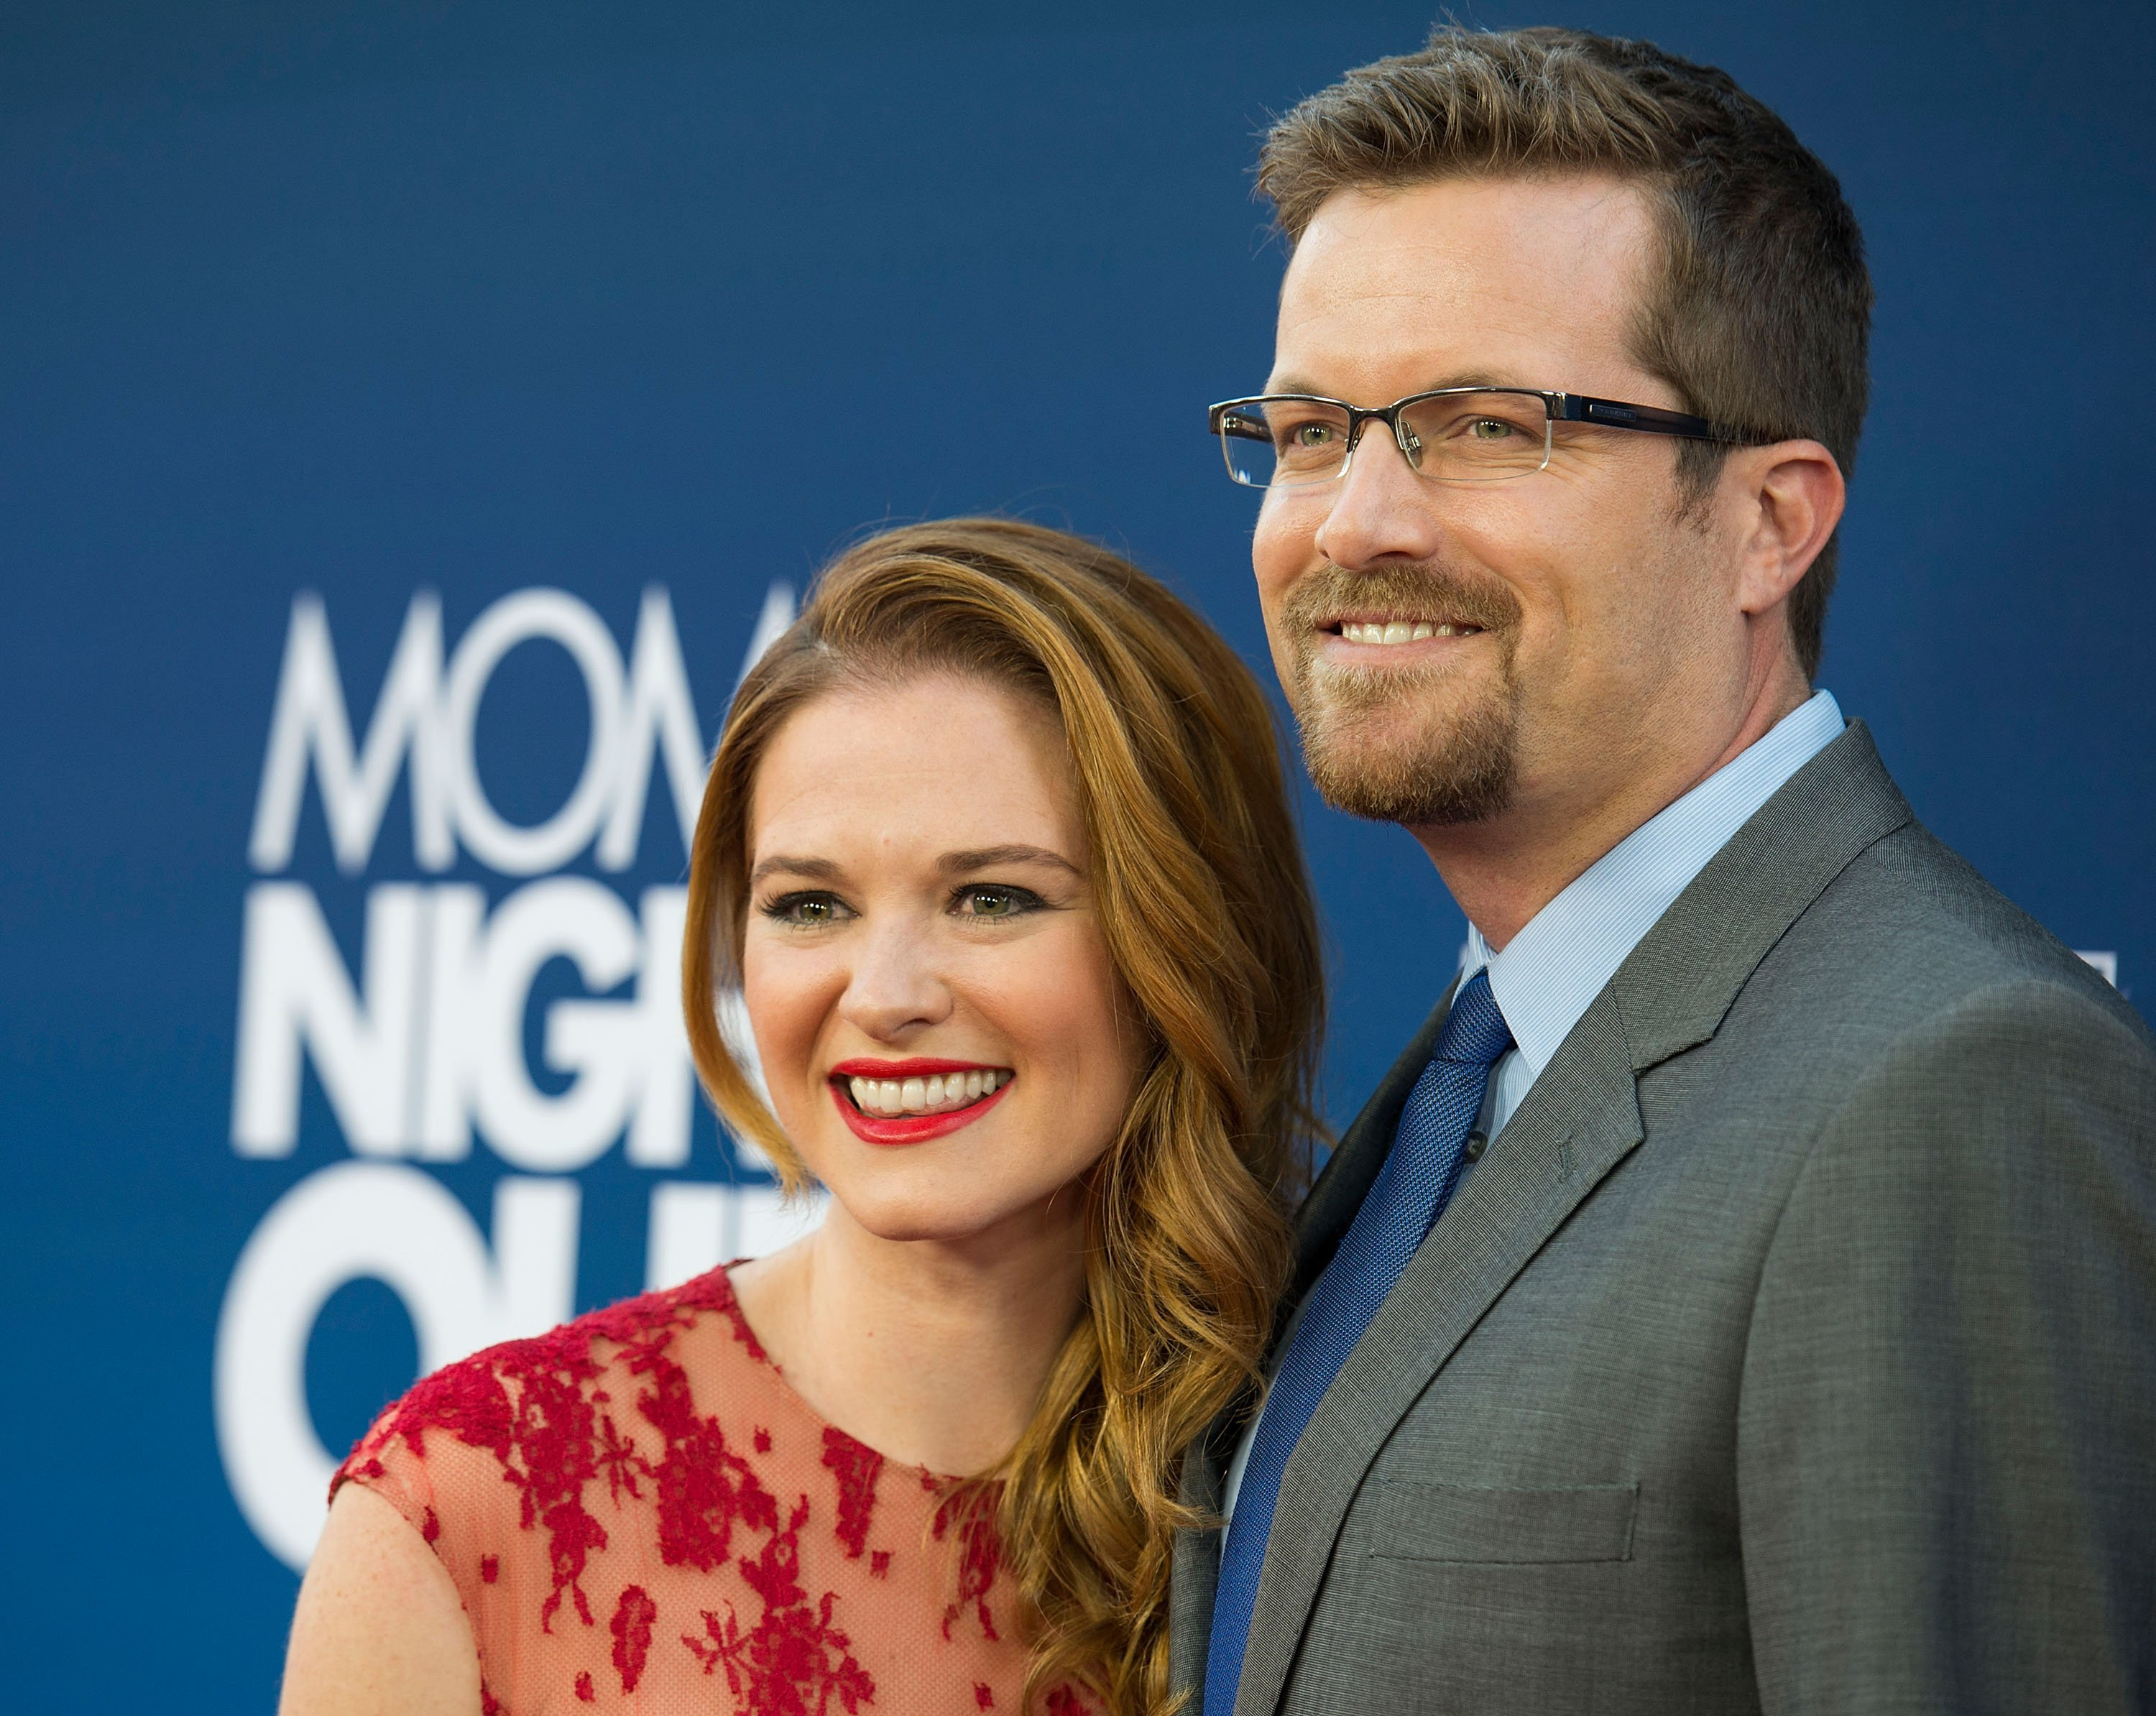 """Sarah Drew and Peter Lanfer arrive at the Premiere Of TriStar Picture's """"Mom's Night Out"""" at TCL Chinese Theatre IMAX on April 29, 2014, in Hollywood, California. 